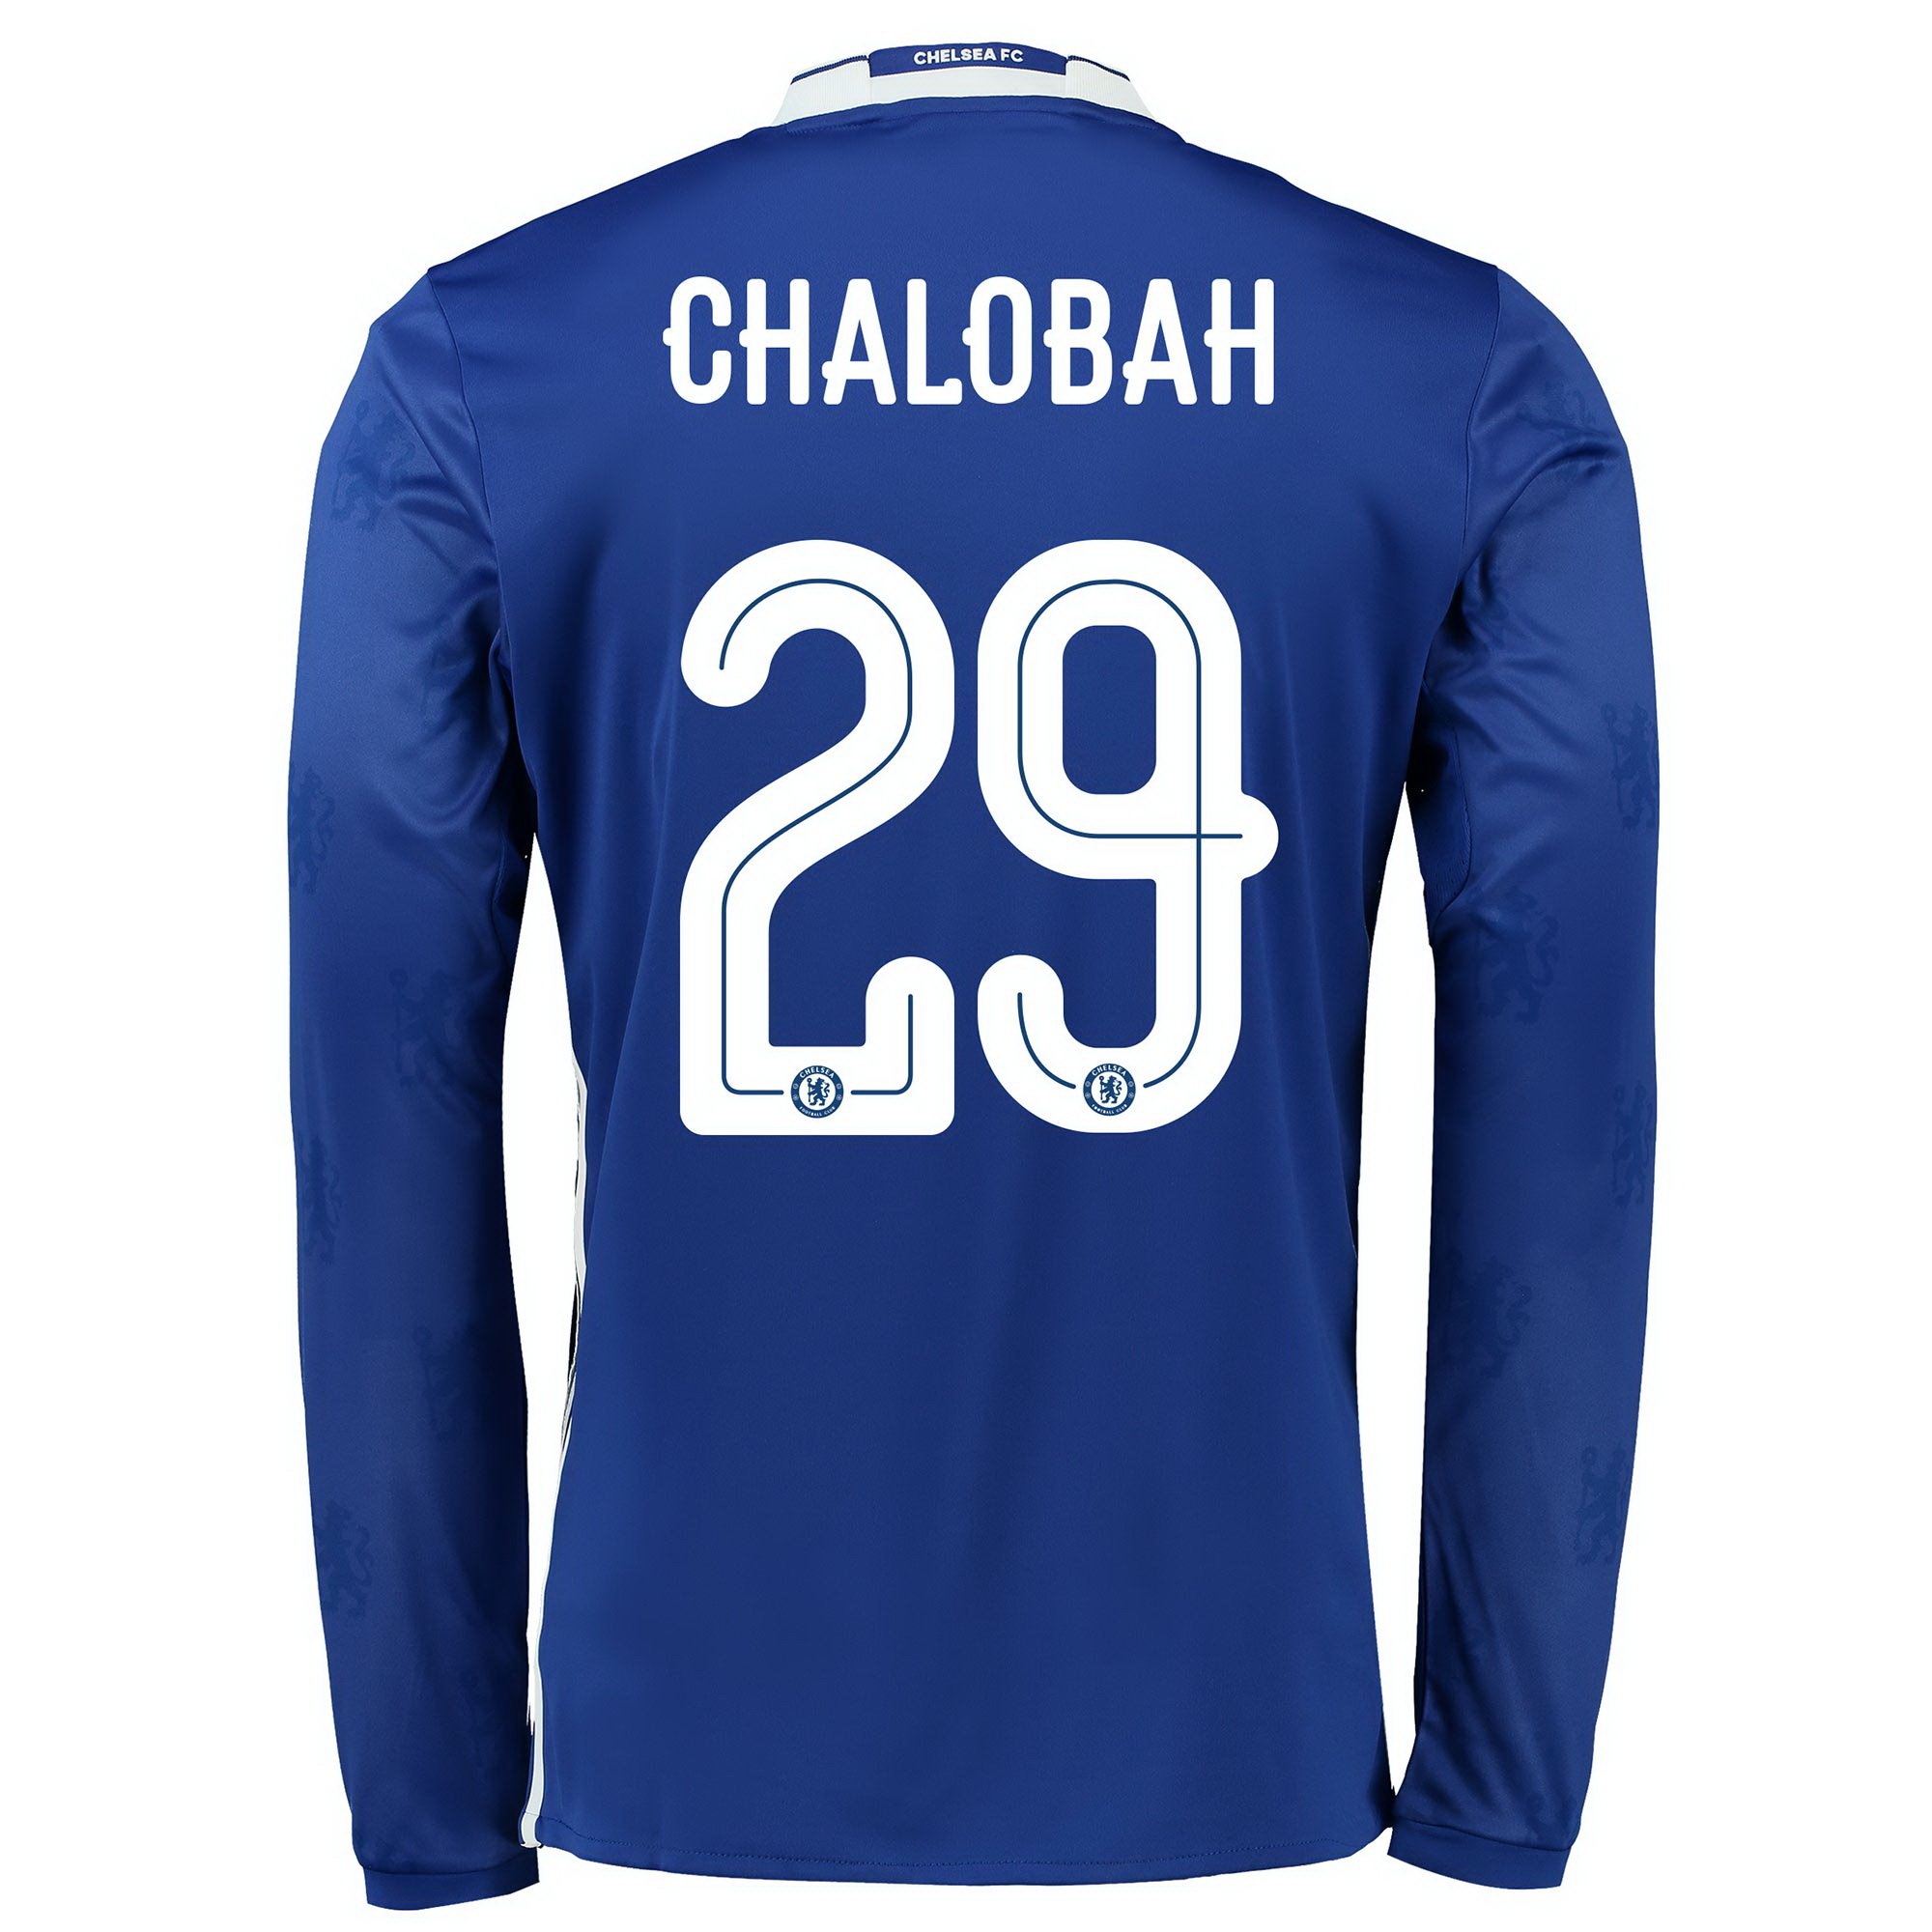 Chelsea Linear Home Shirt 2016-17 - Kids - Long Sleeve with Chalobah 2